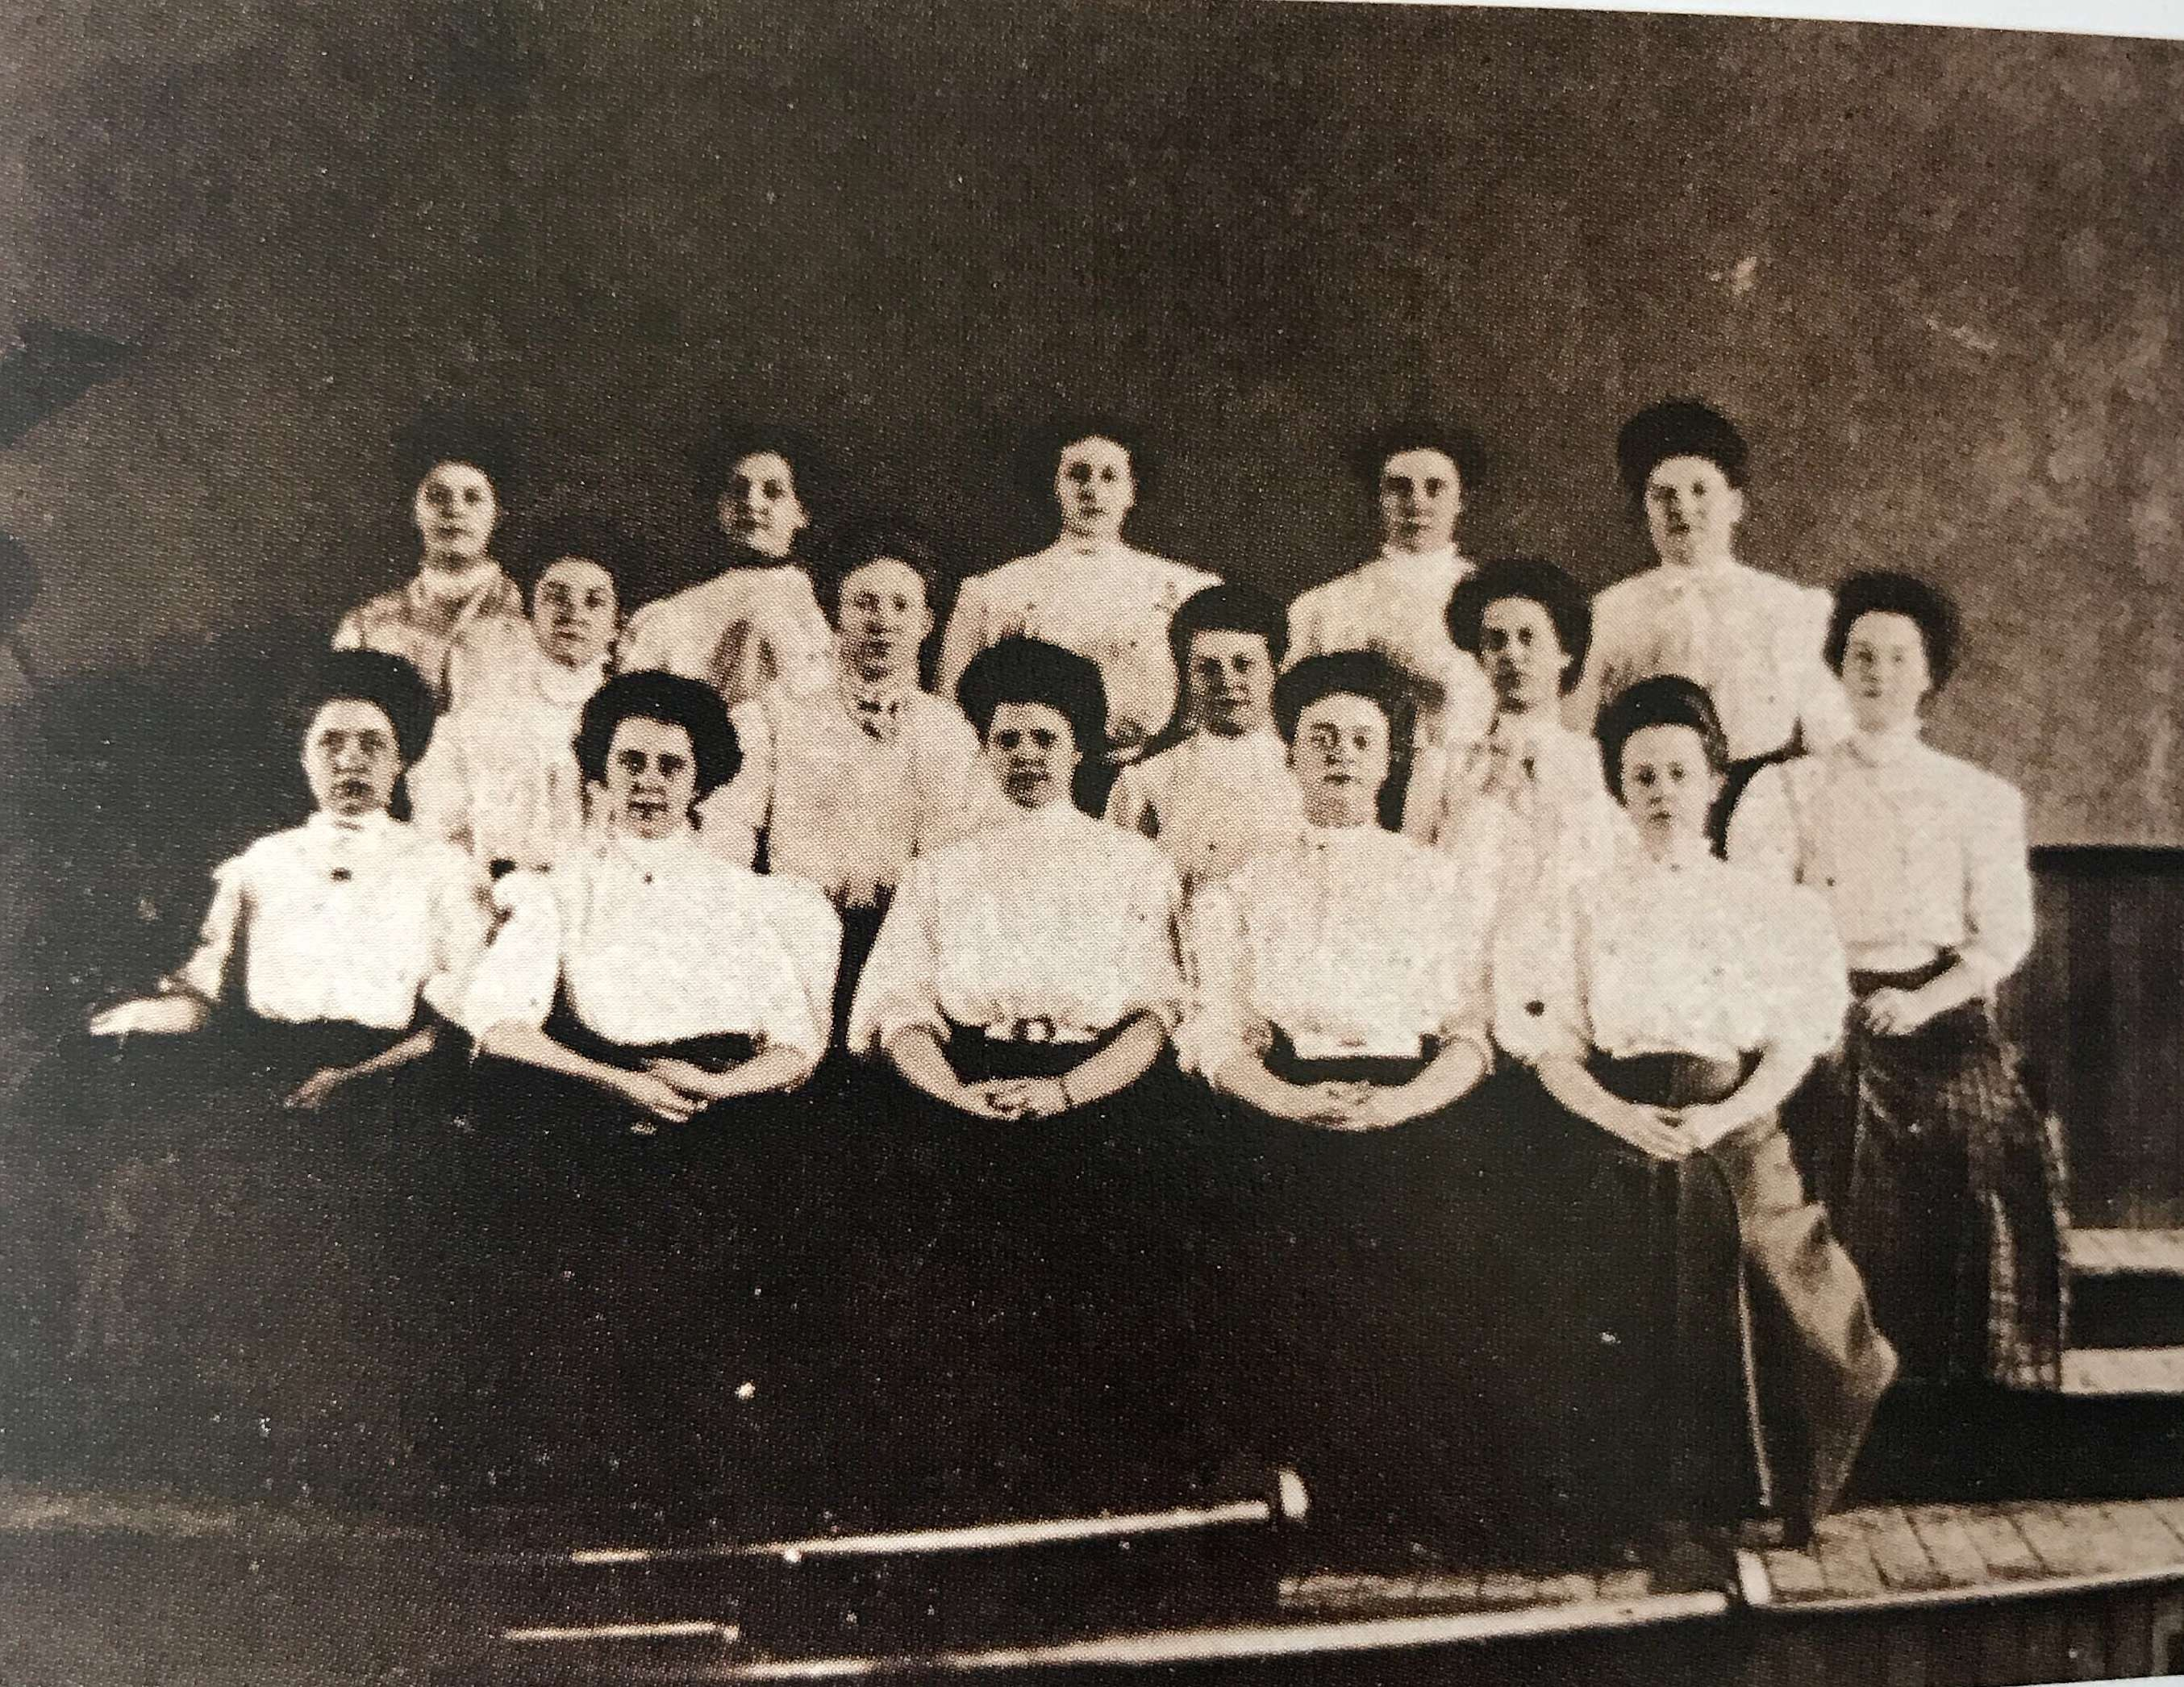 The women of the first graduating class at Westminster College